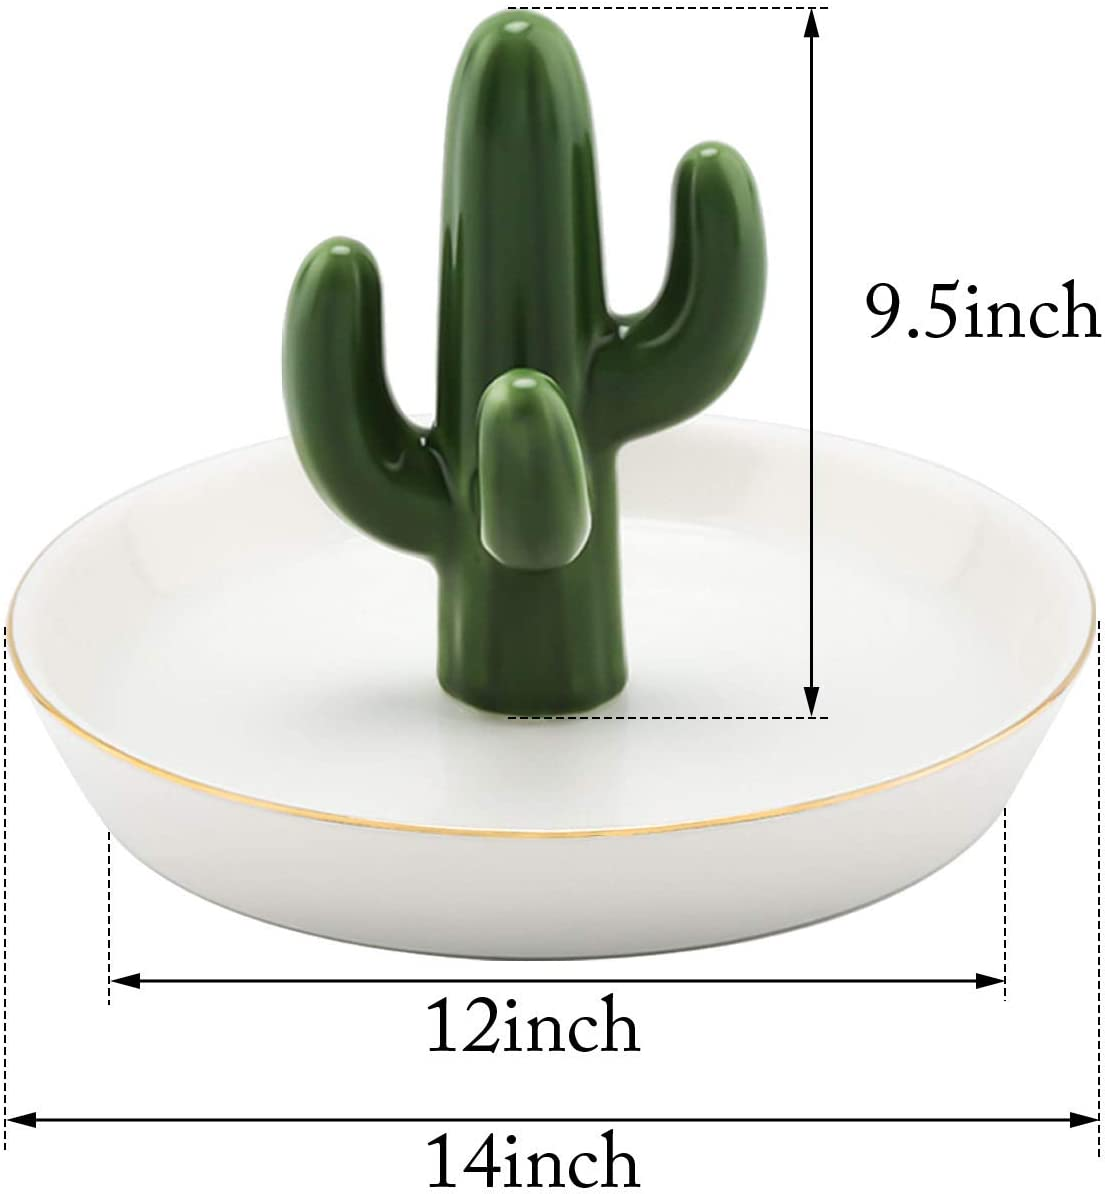 Cactus, 10inch Trinket Tray//Dish Ring Ceramic Ring Holder with Derorative White Dish Ceramic Cactus Ring Holder Green /& White Bracelet Great for Wedding Ring Jewelry Mother`s Day Girl Friend